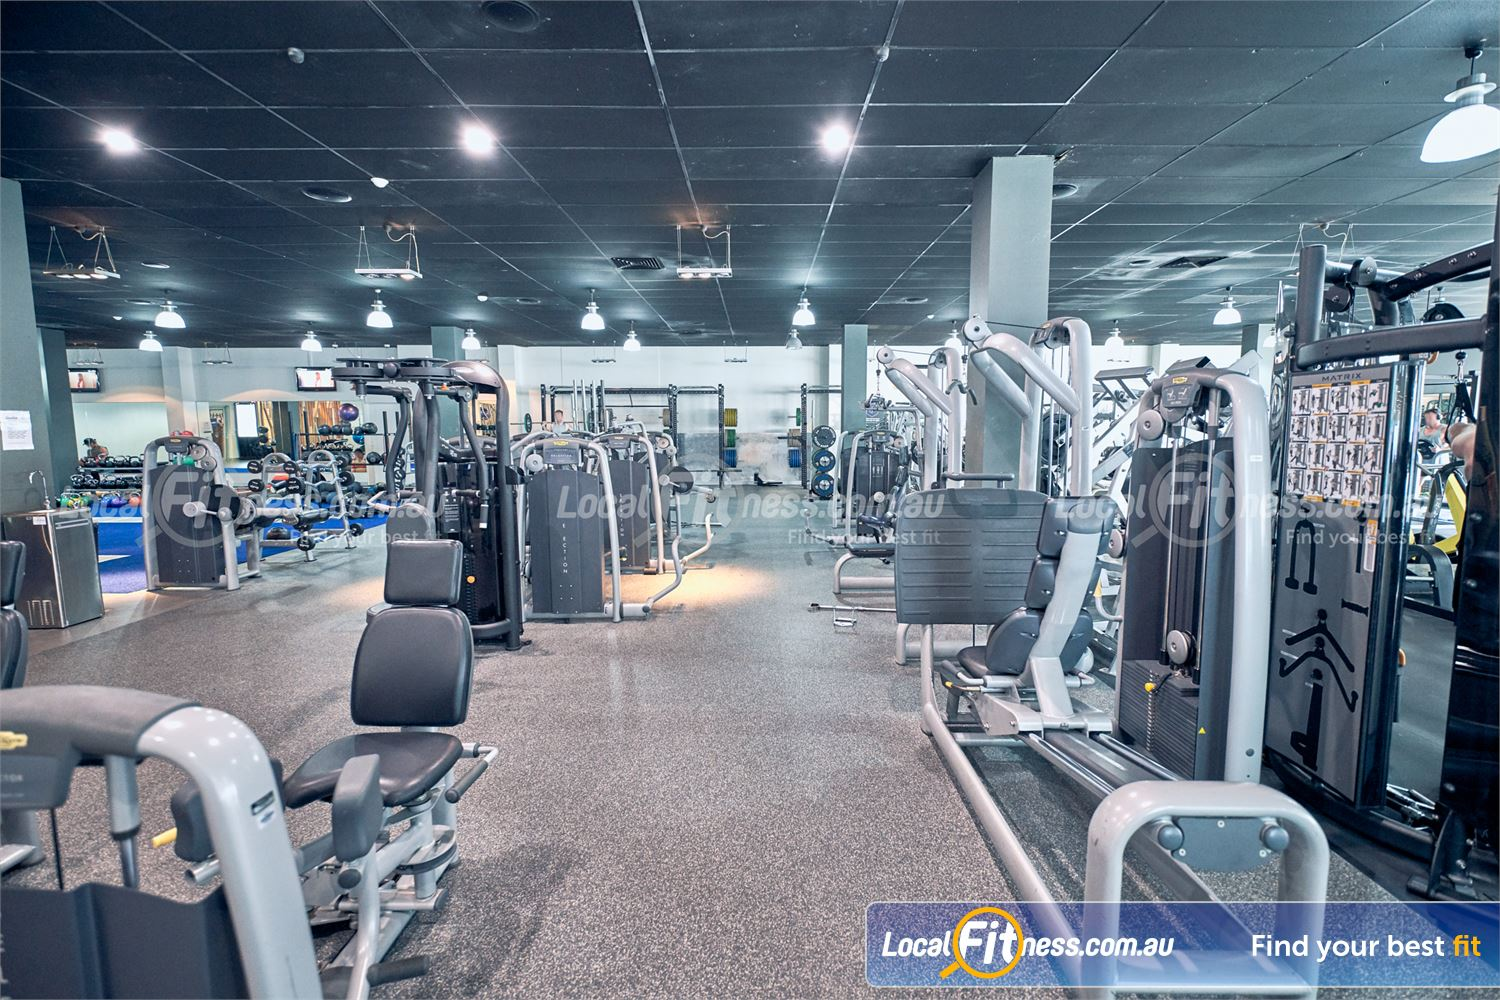 Goodlife Health Clubs Knox City Near Wantirna Our Wantirna South gym is fully equipped with state of the art equipment.